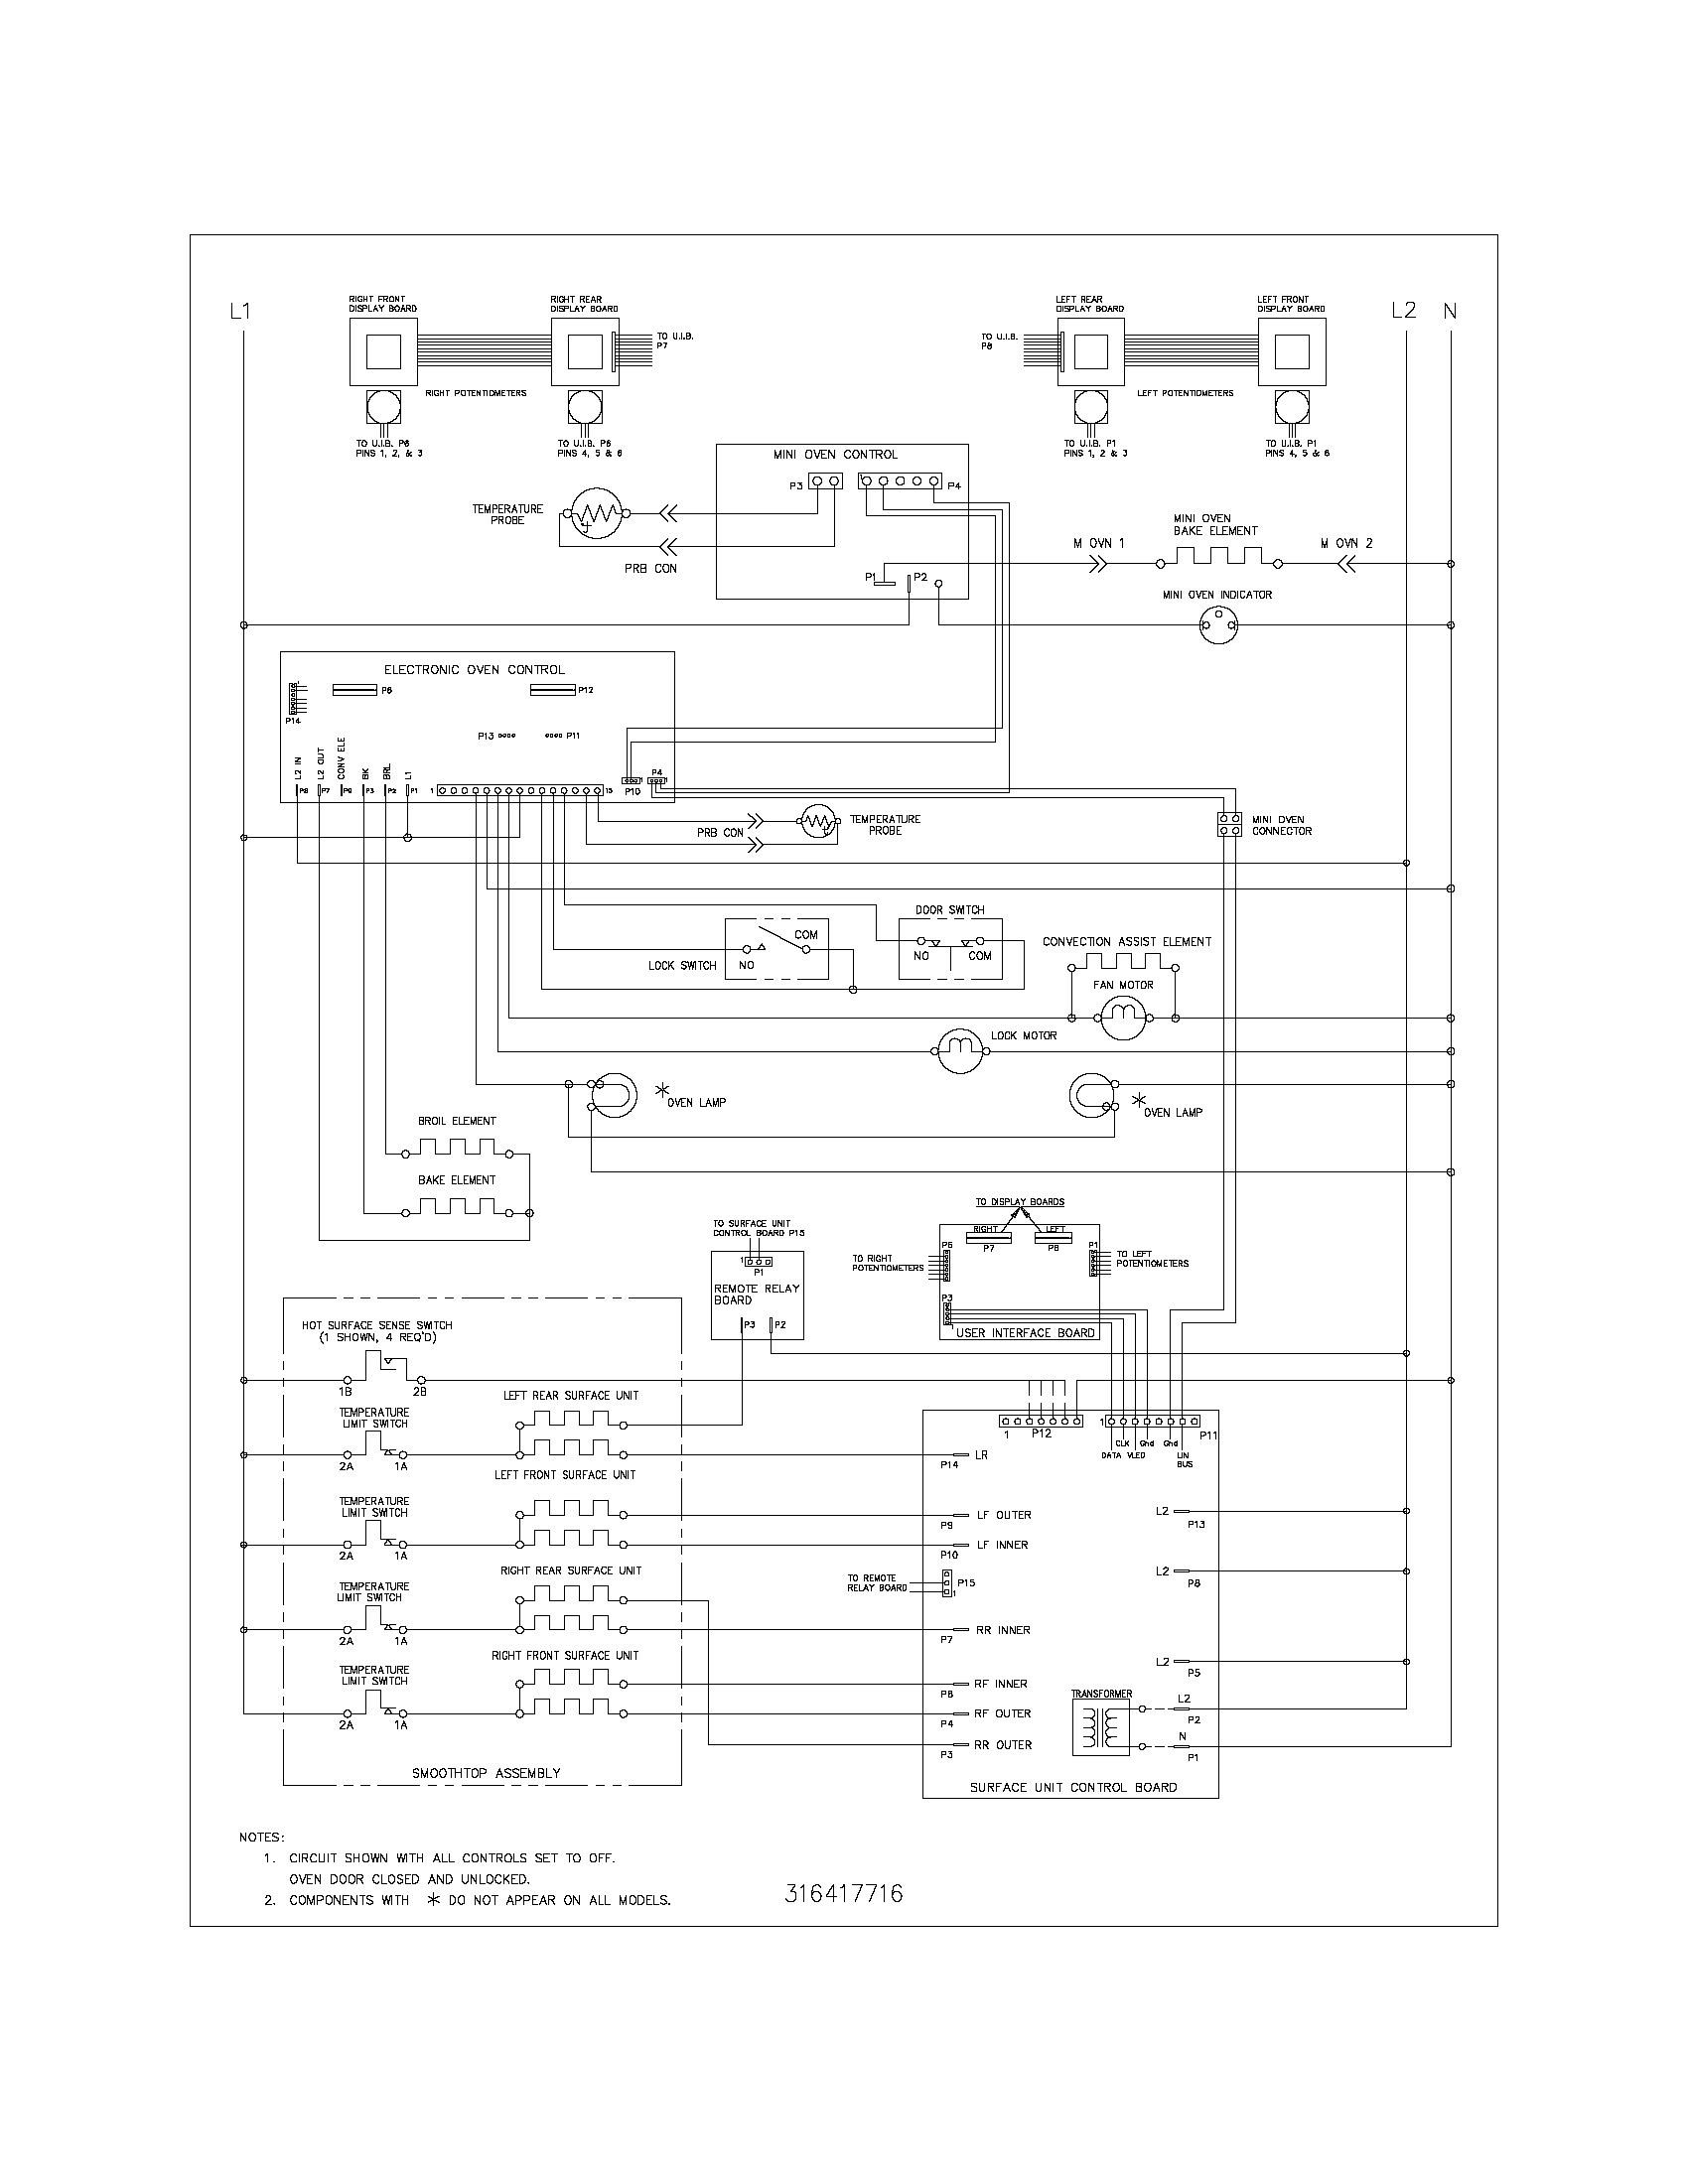 wiring schematic parts odes wiring diagram e z go wiring diagram \u2022 wiring diagrams j oliver 1850 wiring diagram at alyssarenee.co